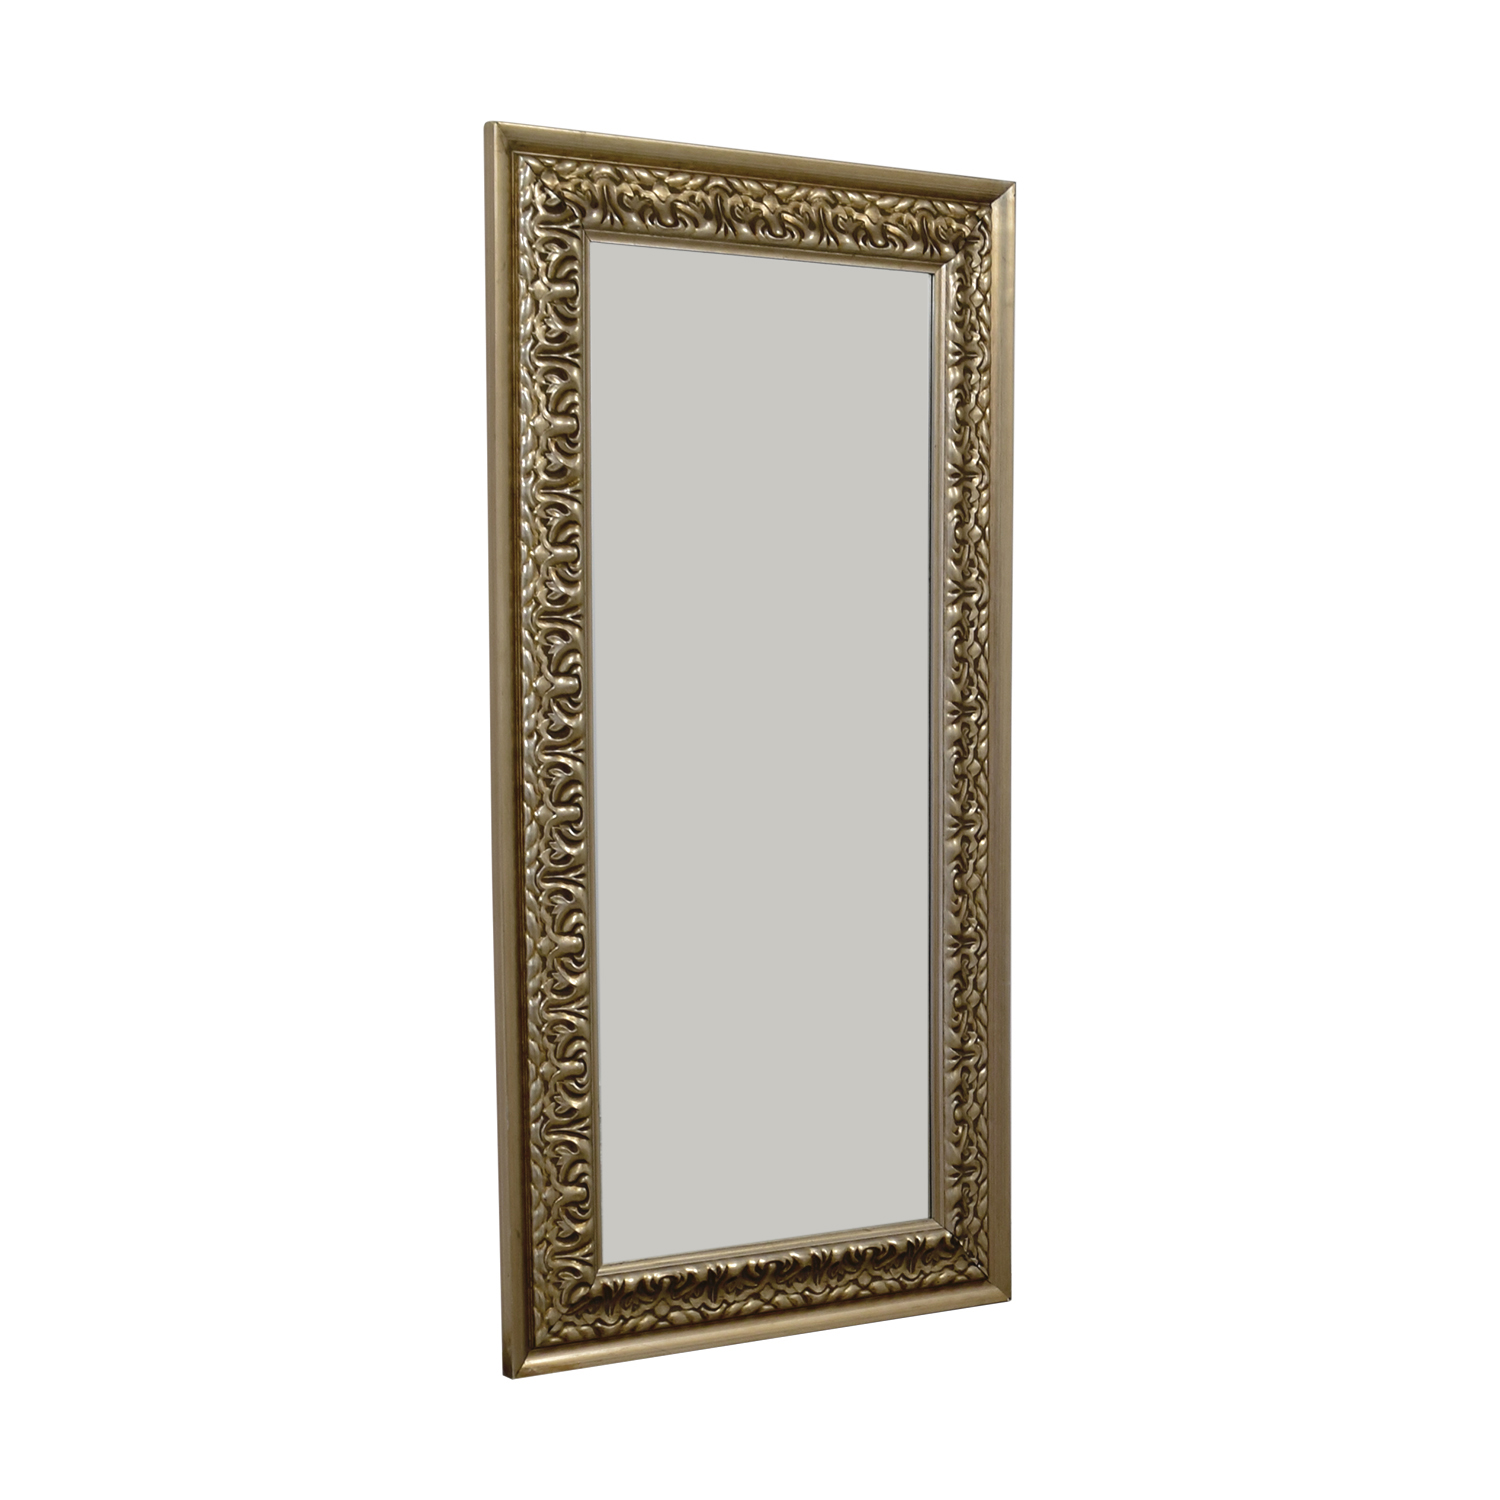 Gold Carved Frame Floor Mirror used